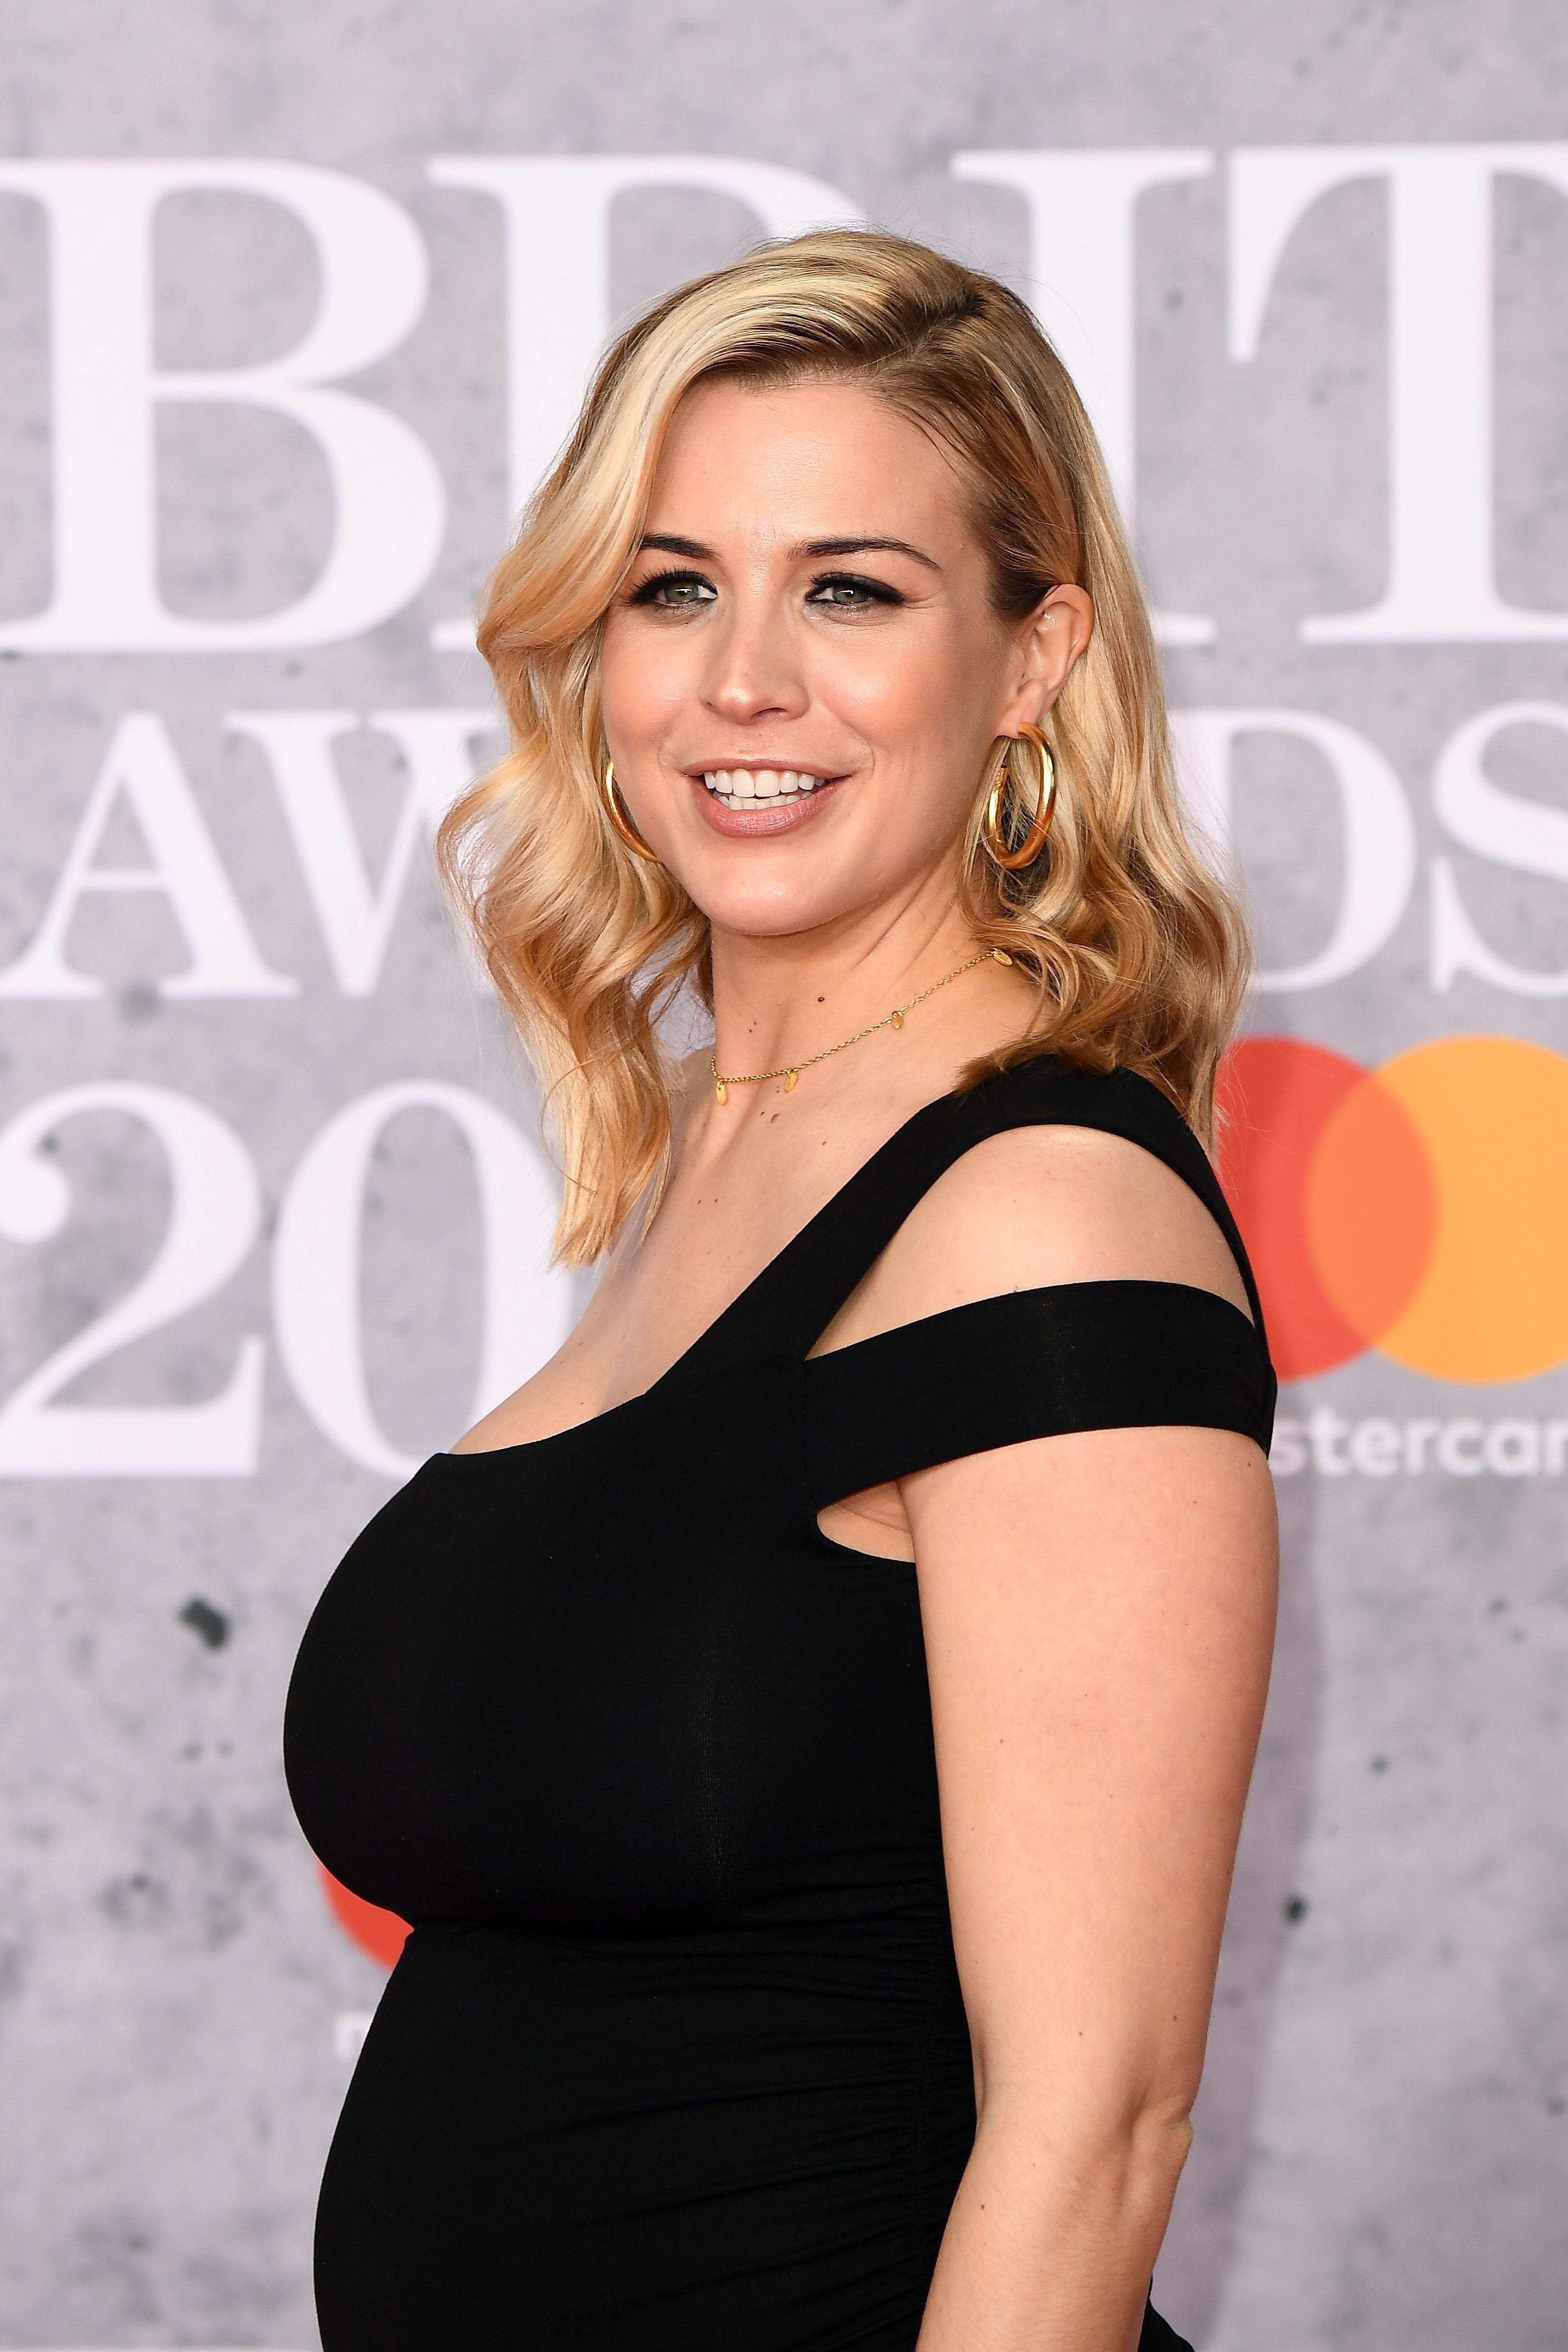 'Proudly Rocking My Post-Baby Curves:' Gemma Atkinson Gets Real About Her New Mum Body